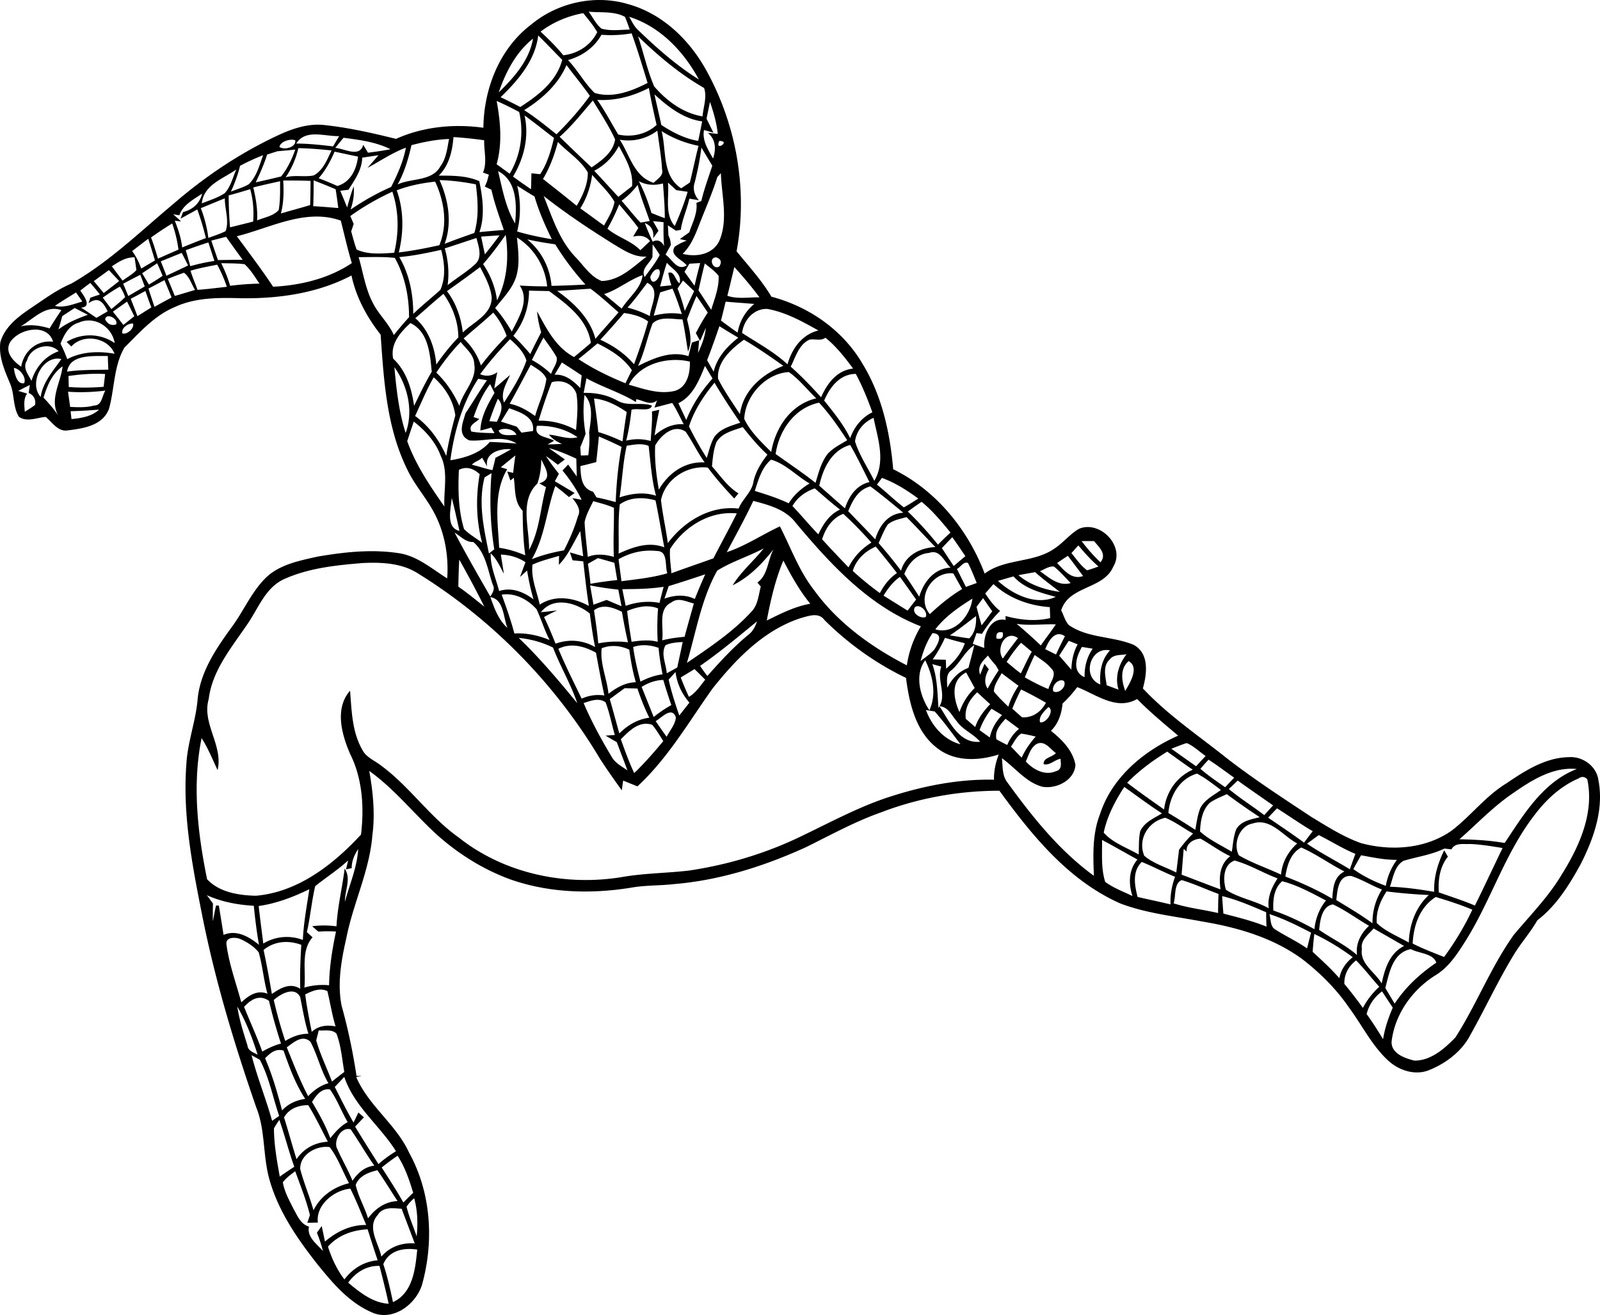 spider hulk coloring pages - photo#18